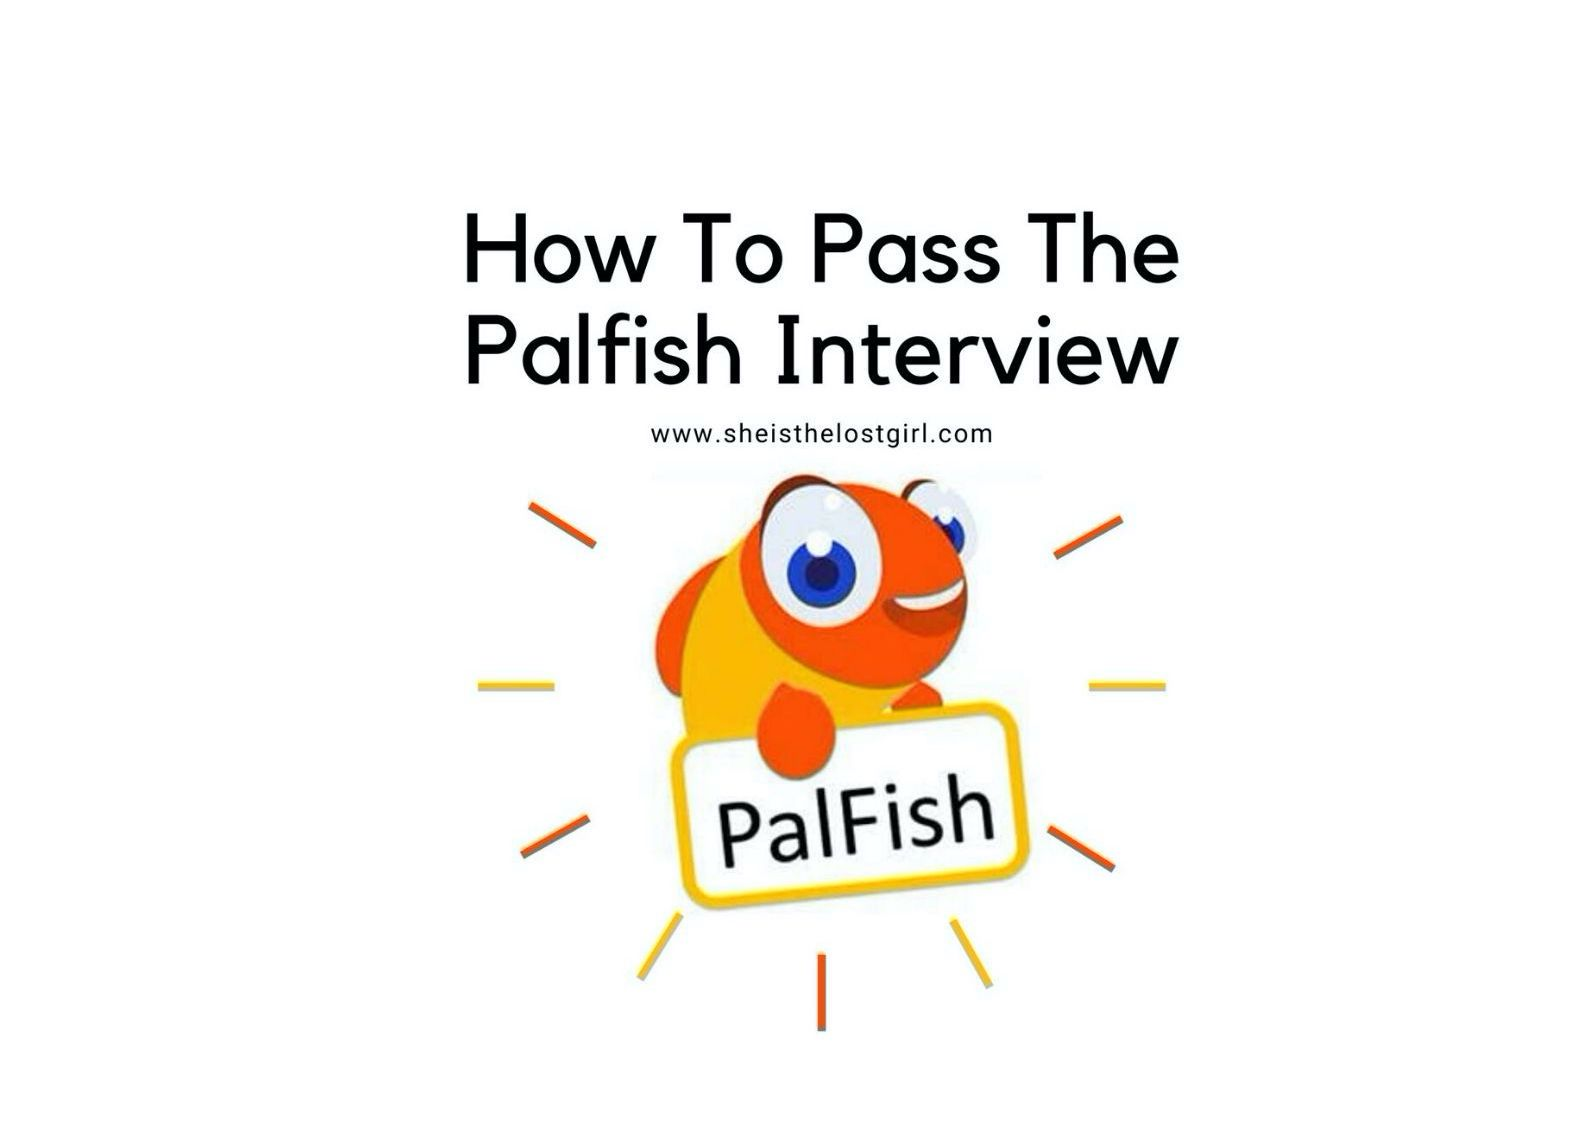 How to pass the Palfish interview